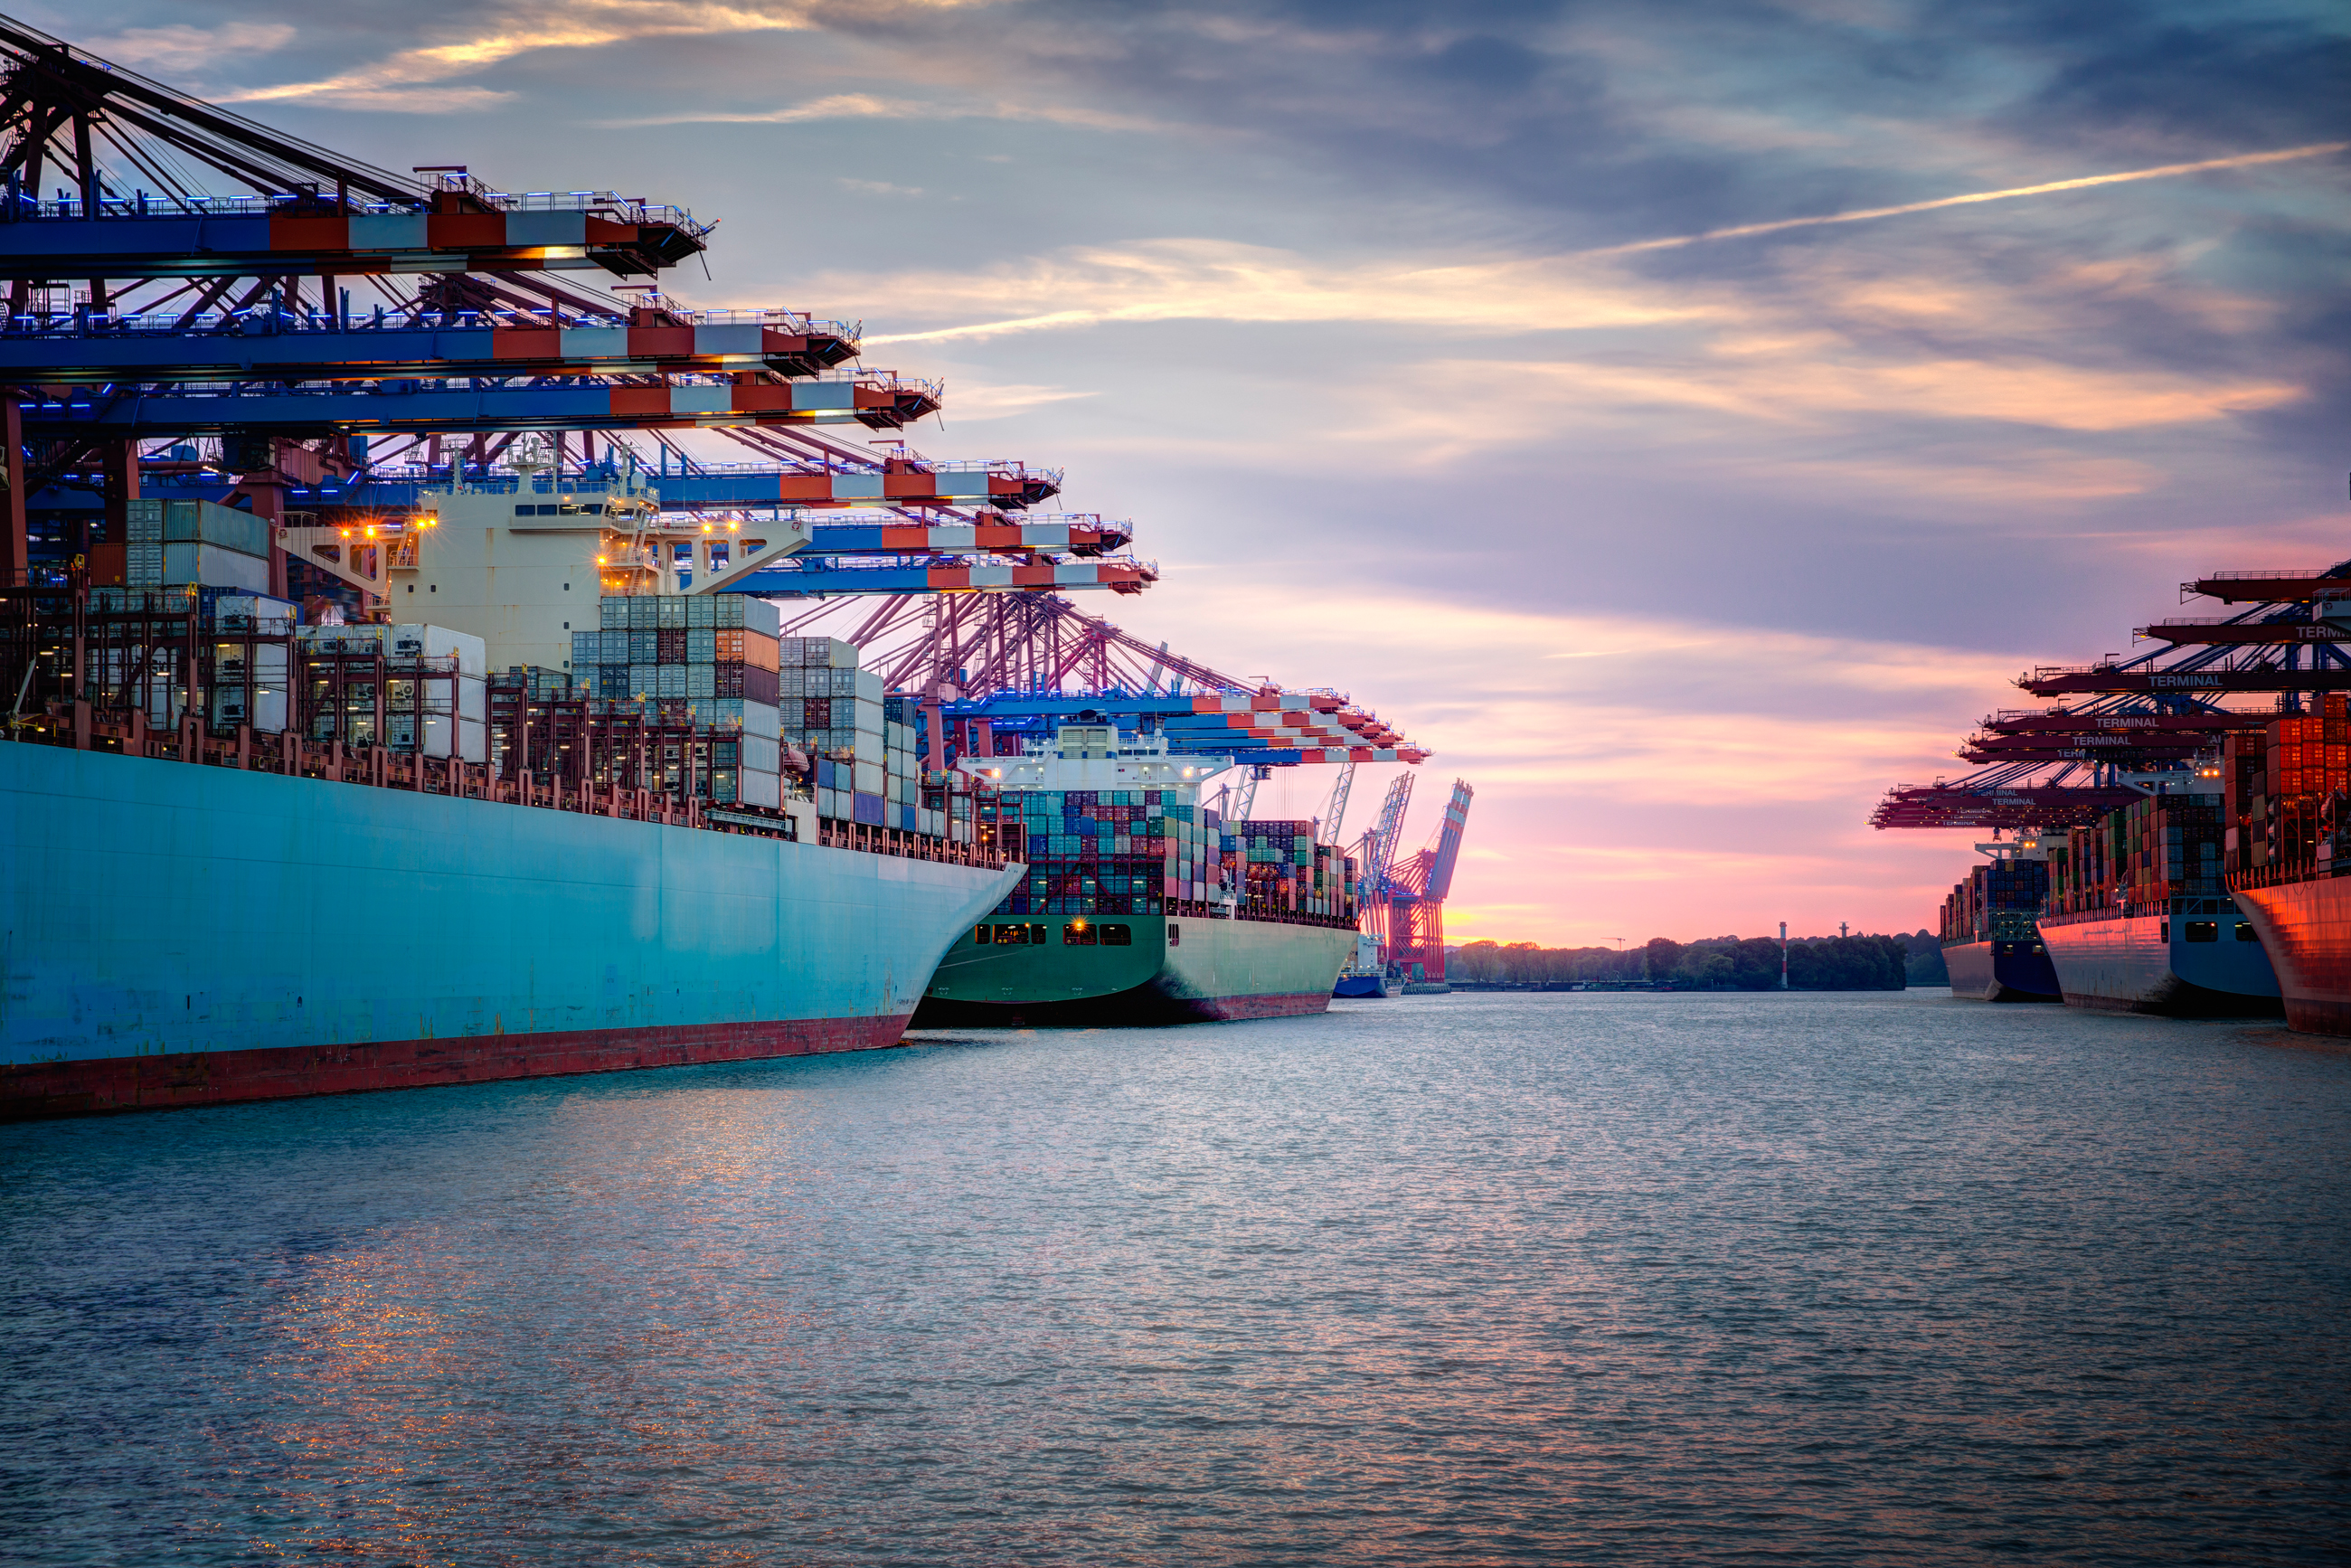 WOCO Group implements Shippeo real-time visibility for holistic view of global transport operations